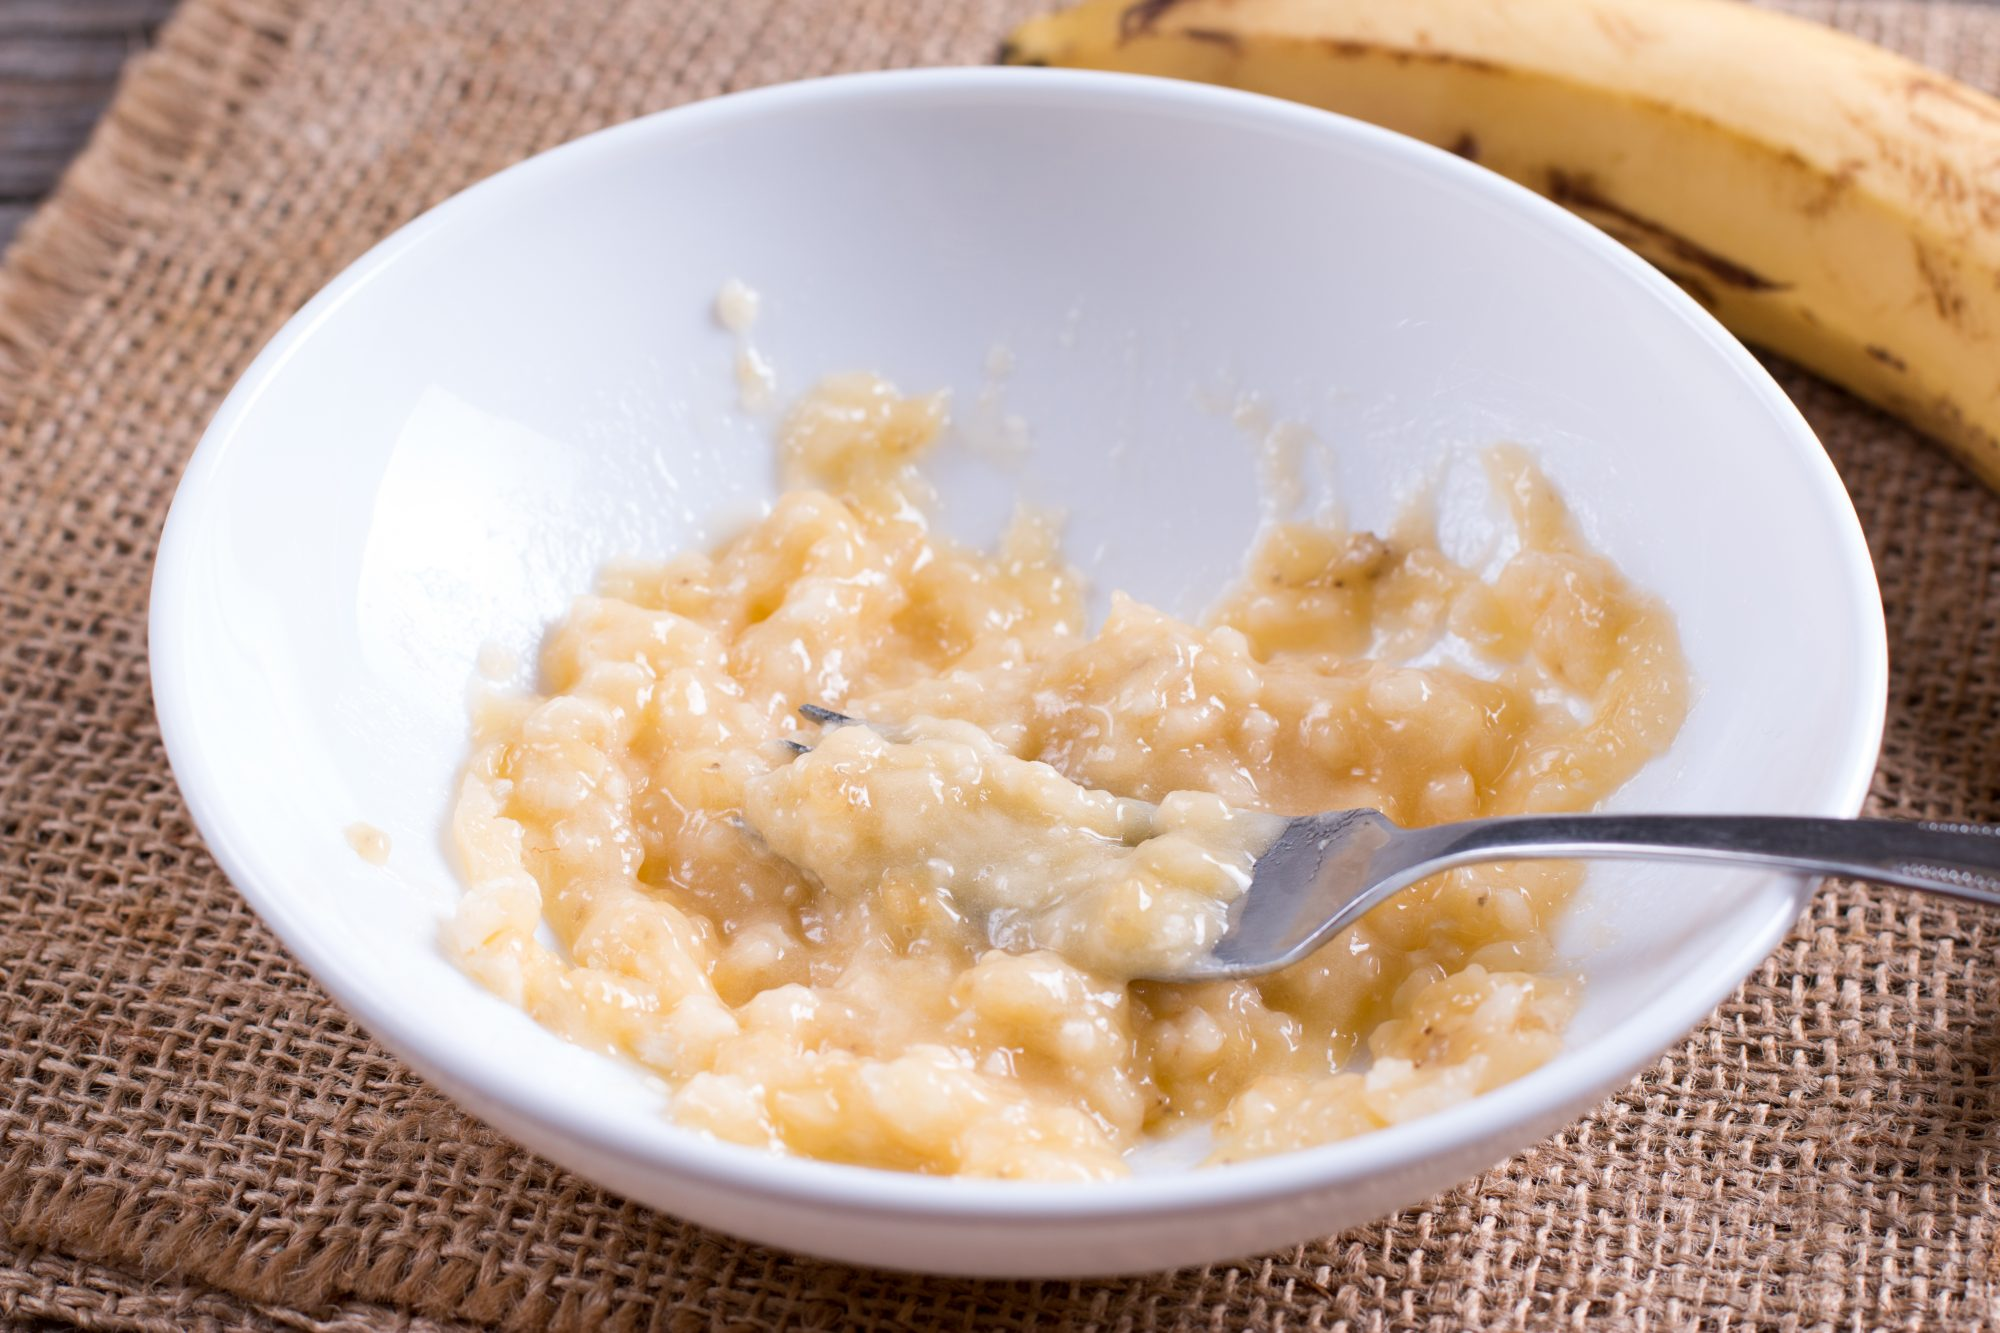 Slices of banana in a bowl and fork